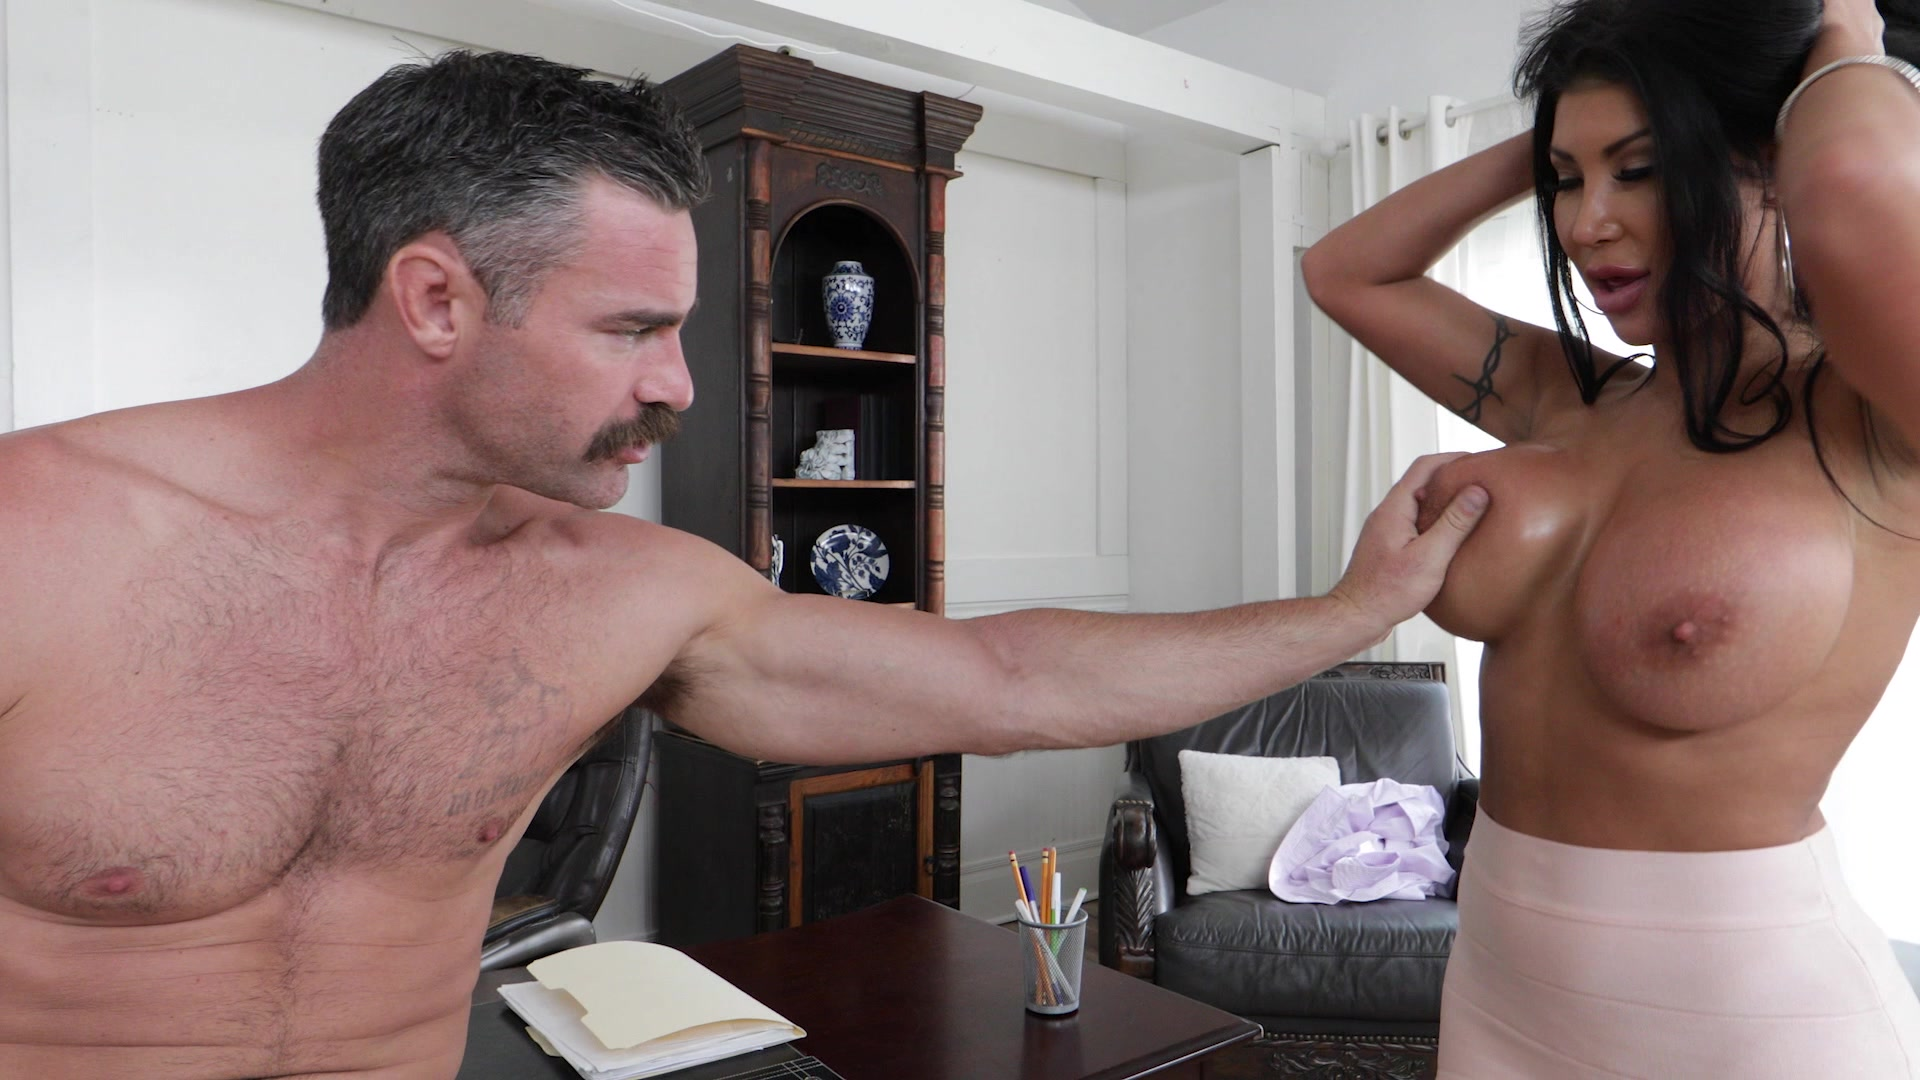 Dad personal secretary blackmailed breasts played with